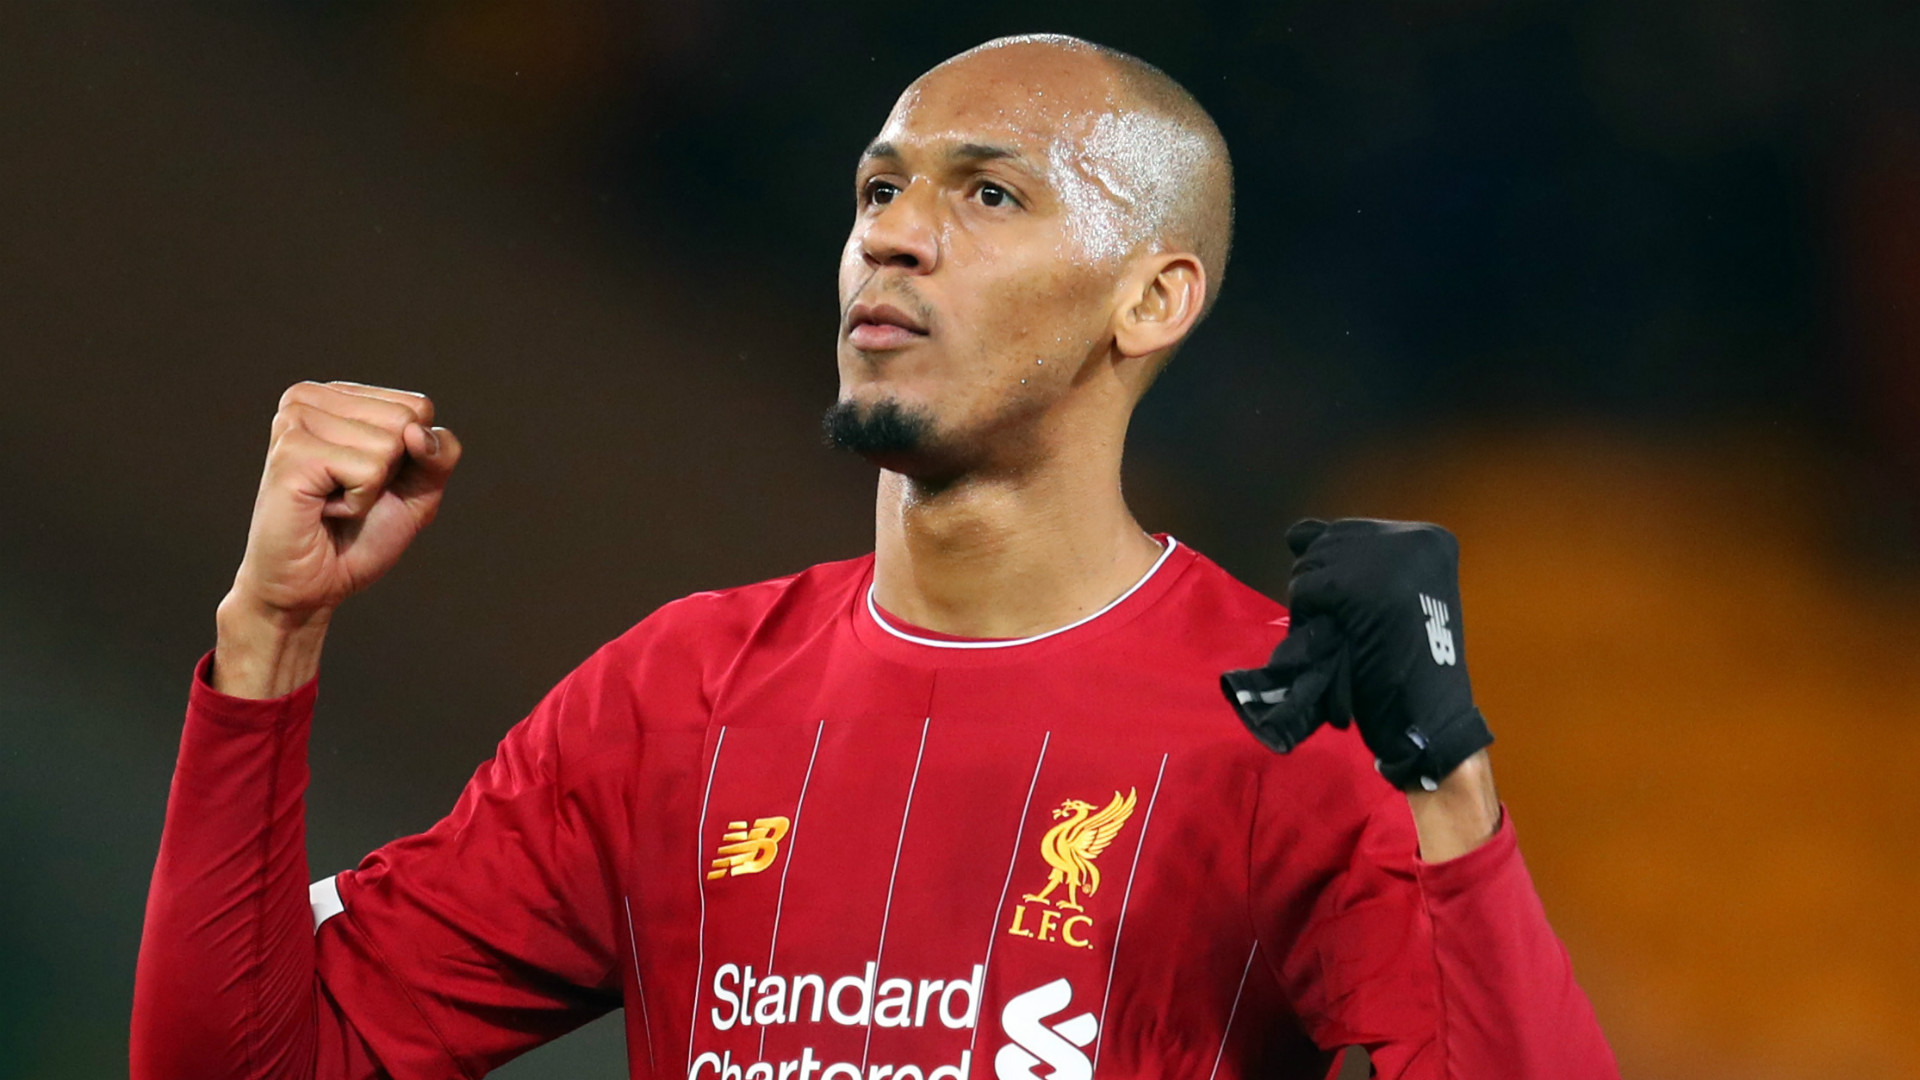 'Liverpool's class of 2020 will always be remembered' – Fabinho proud of Premier League title winners